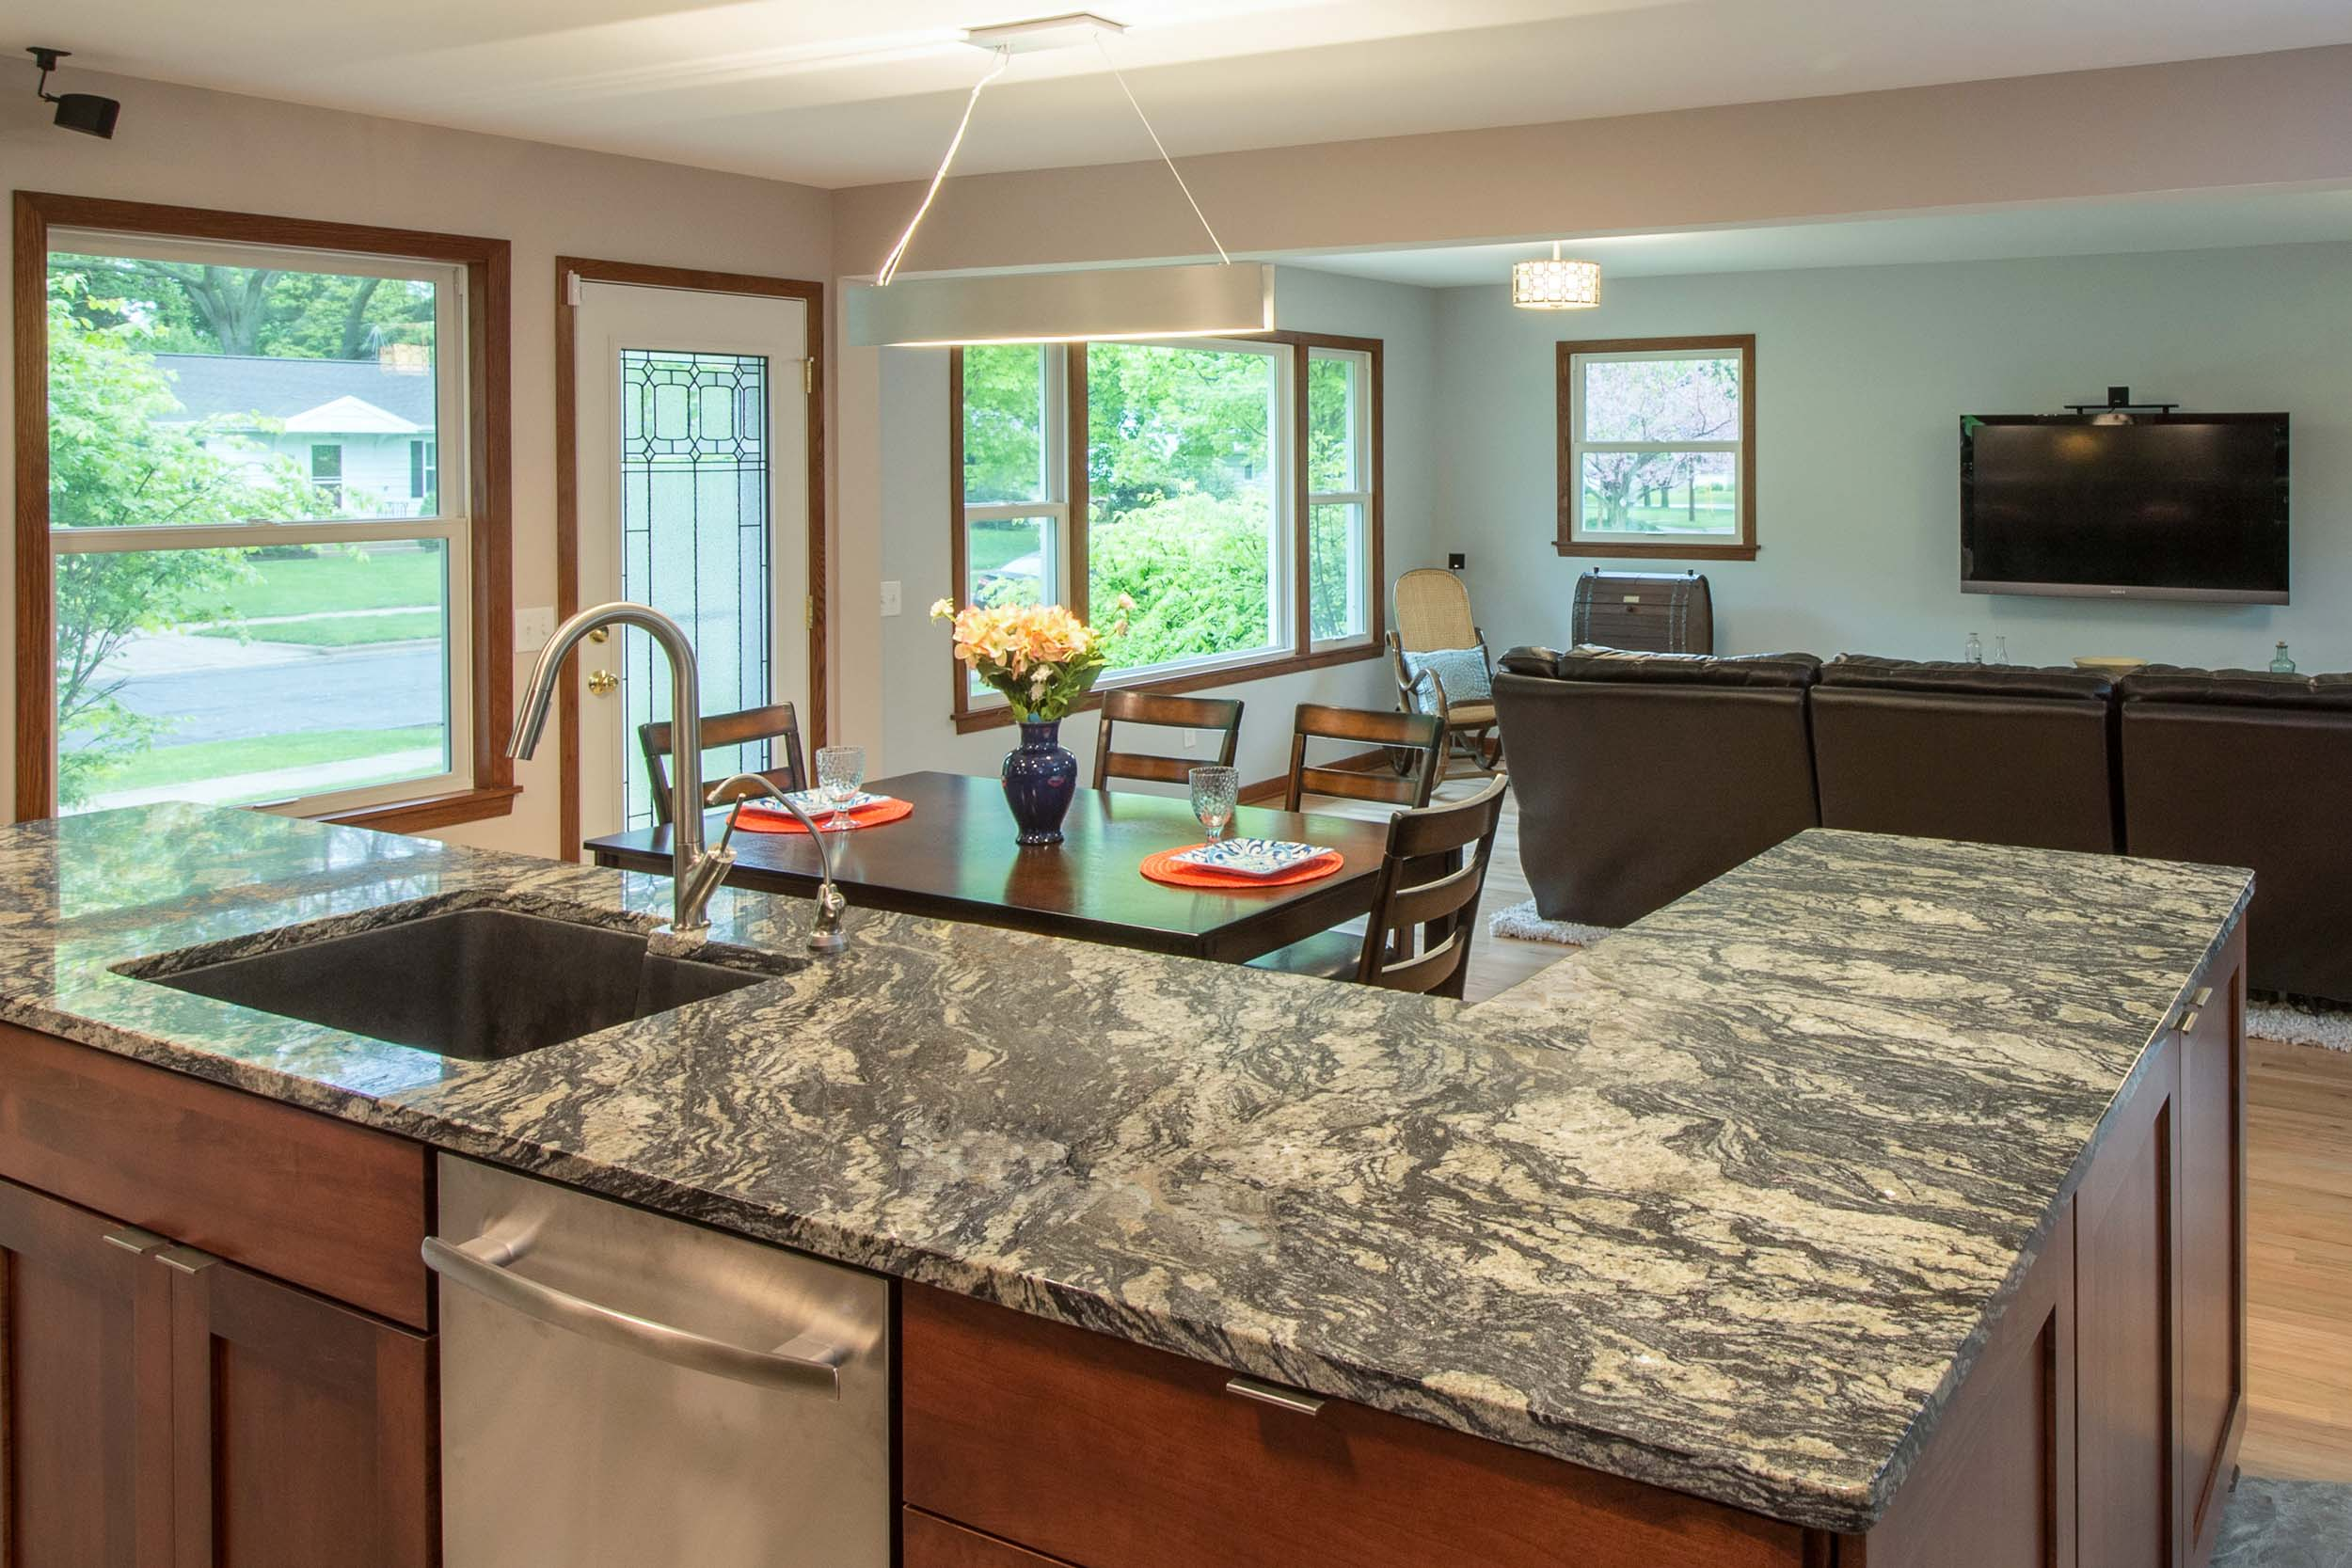 Create An Open Concept Floor Plan In An Existing Home